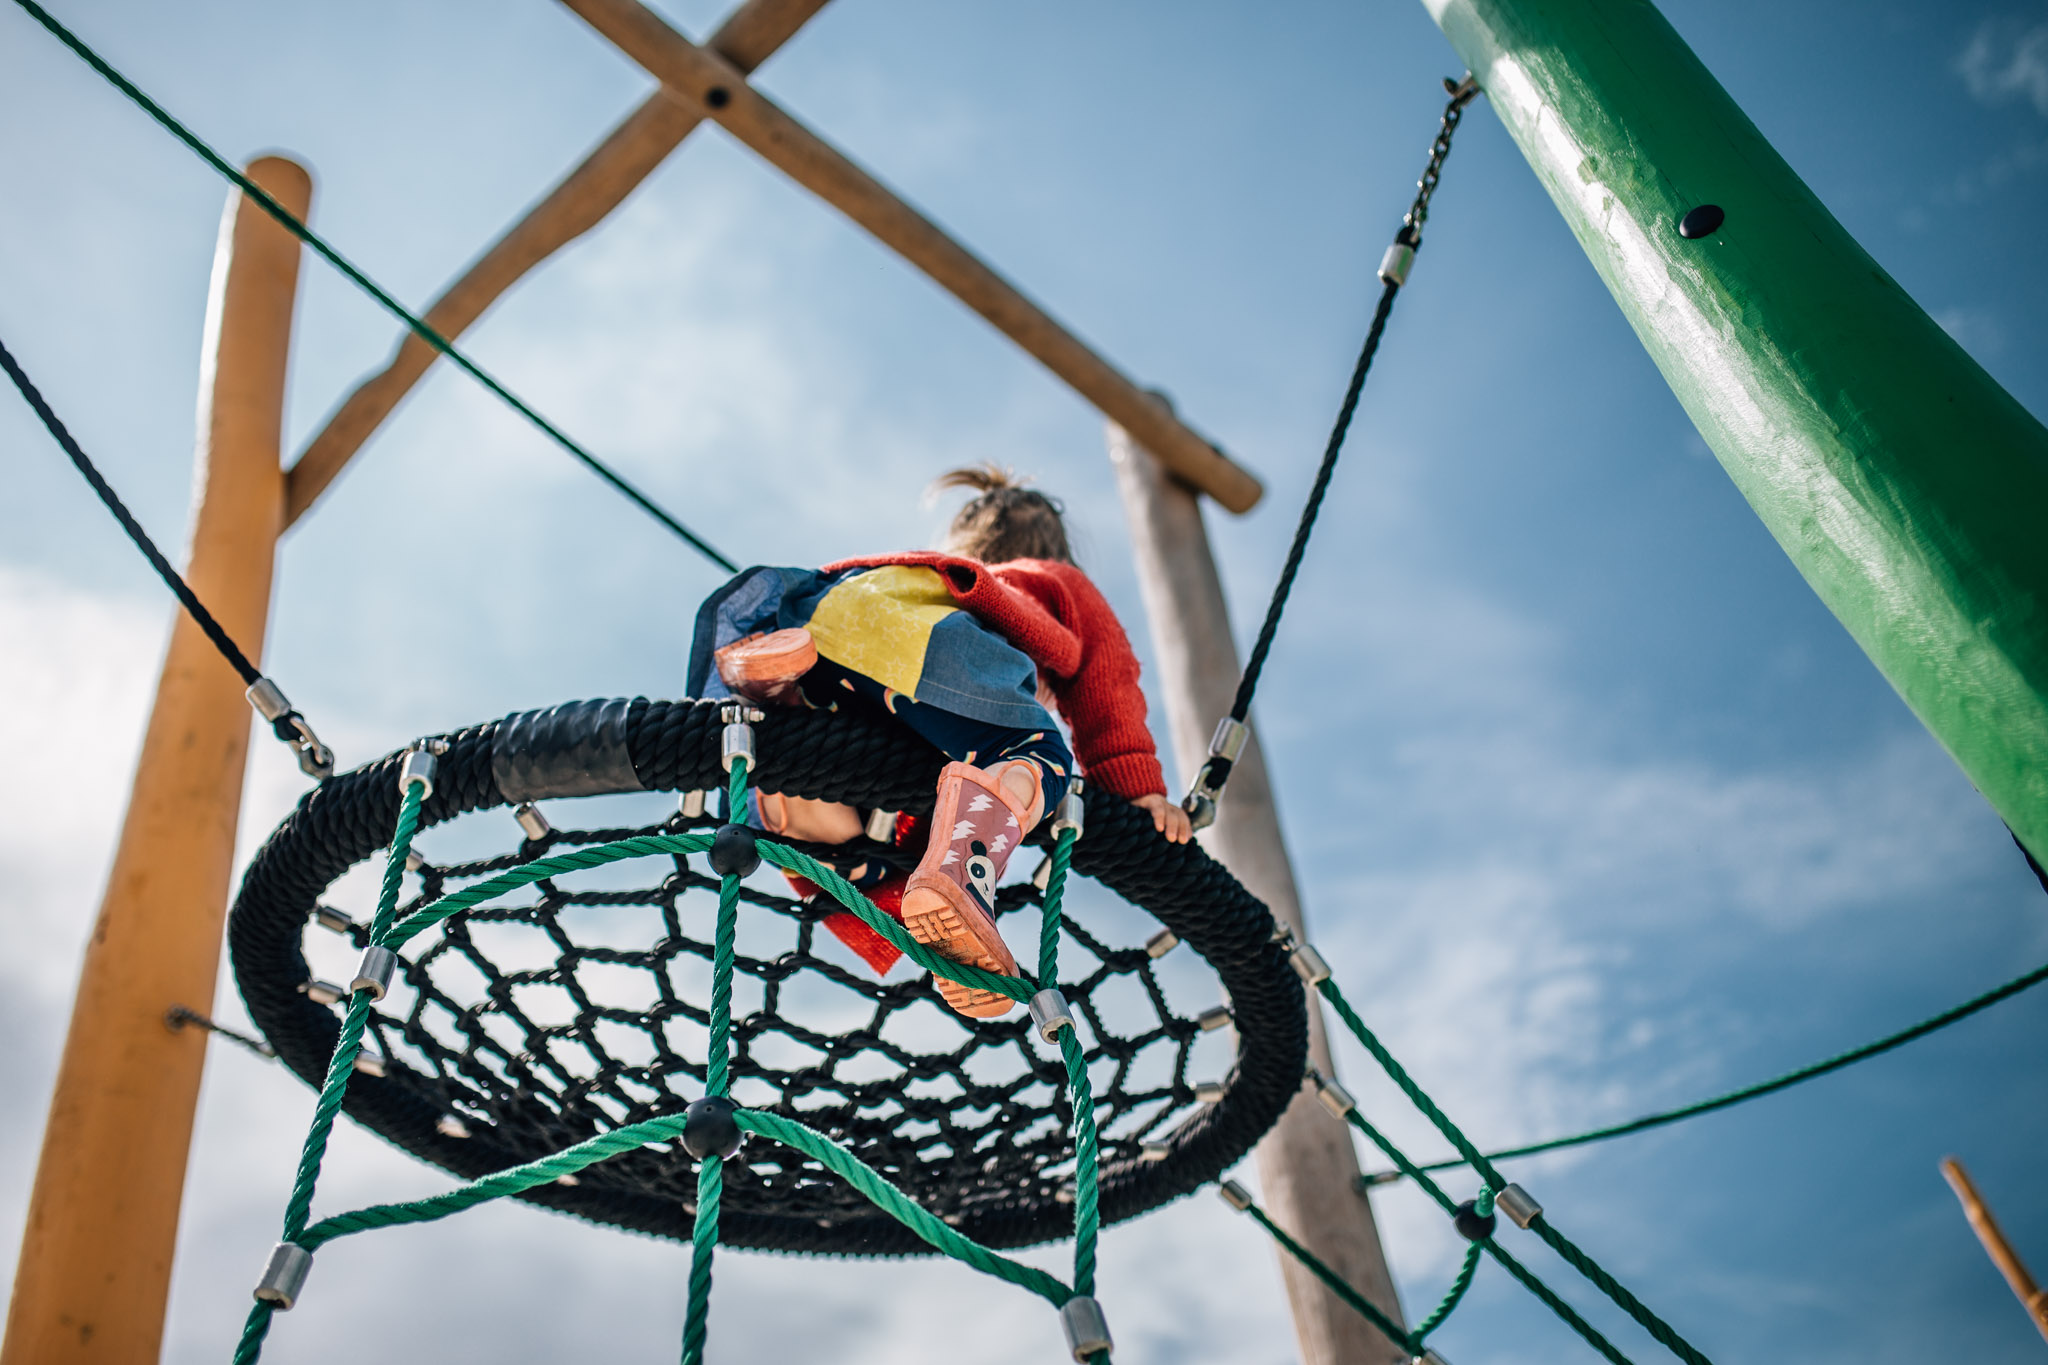 The Warralily Blvd playground boasts a climbing frame reminiscent of your best treehouse childhood fantasies.